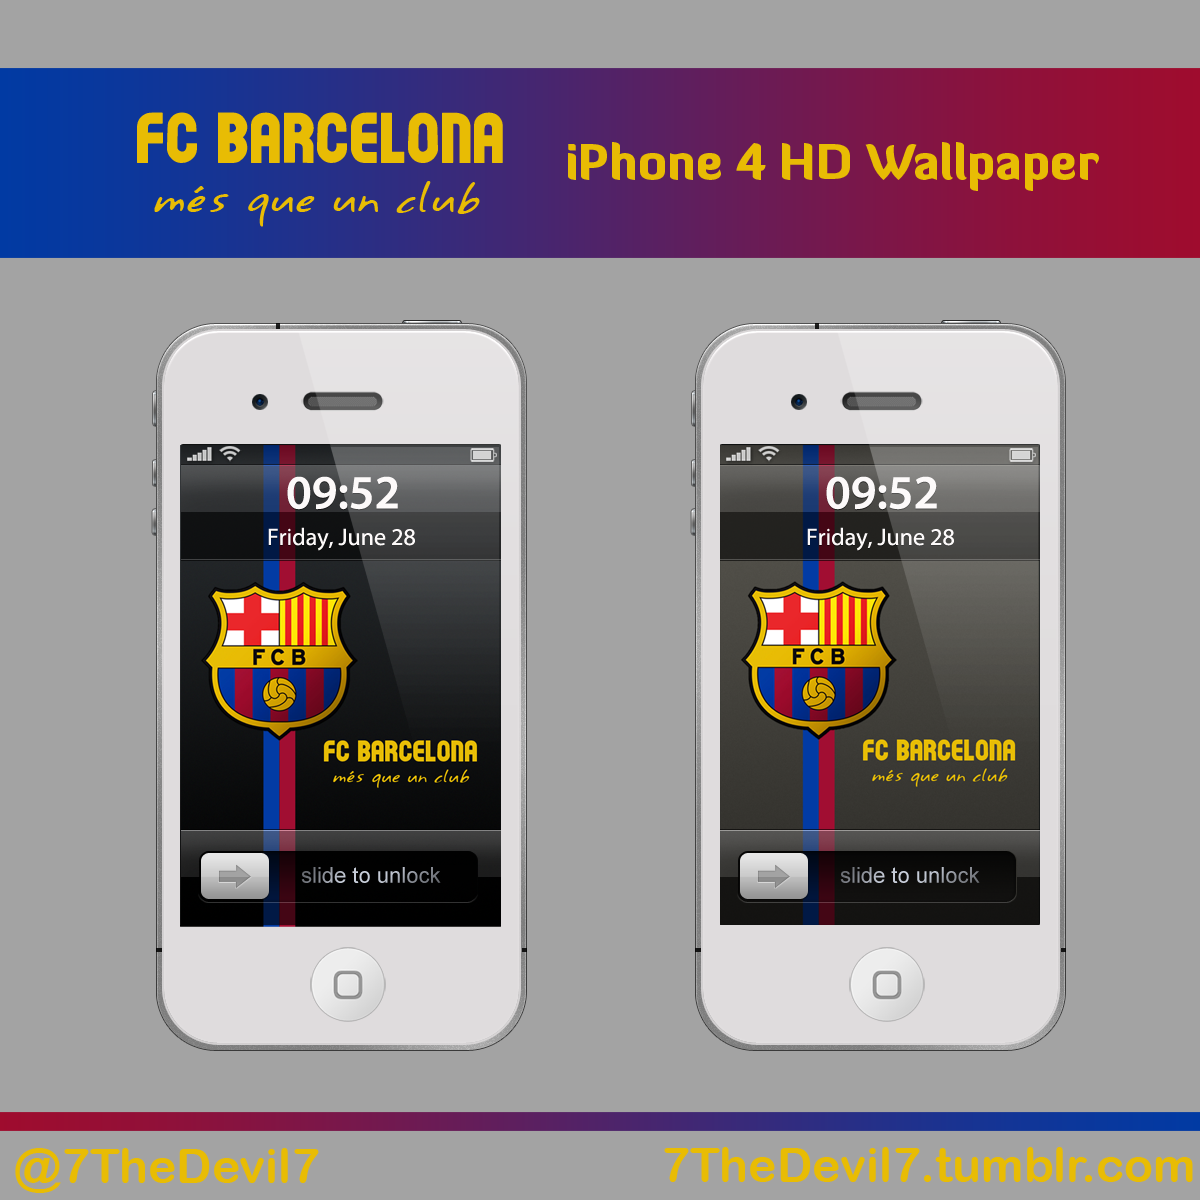 Wallpaper iphone barcelona - Fc Barcelona Iphone Wallpaper By 7thedevil7 Fc Barcelona Iphone Wallpaper By 7thedevil7